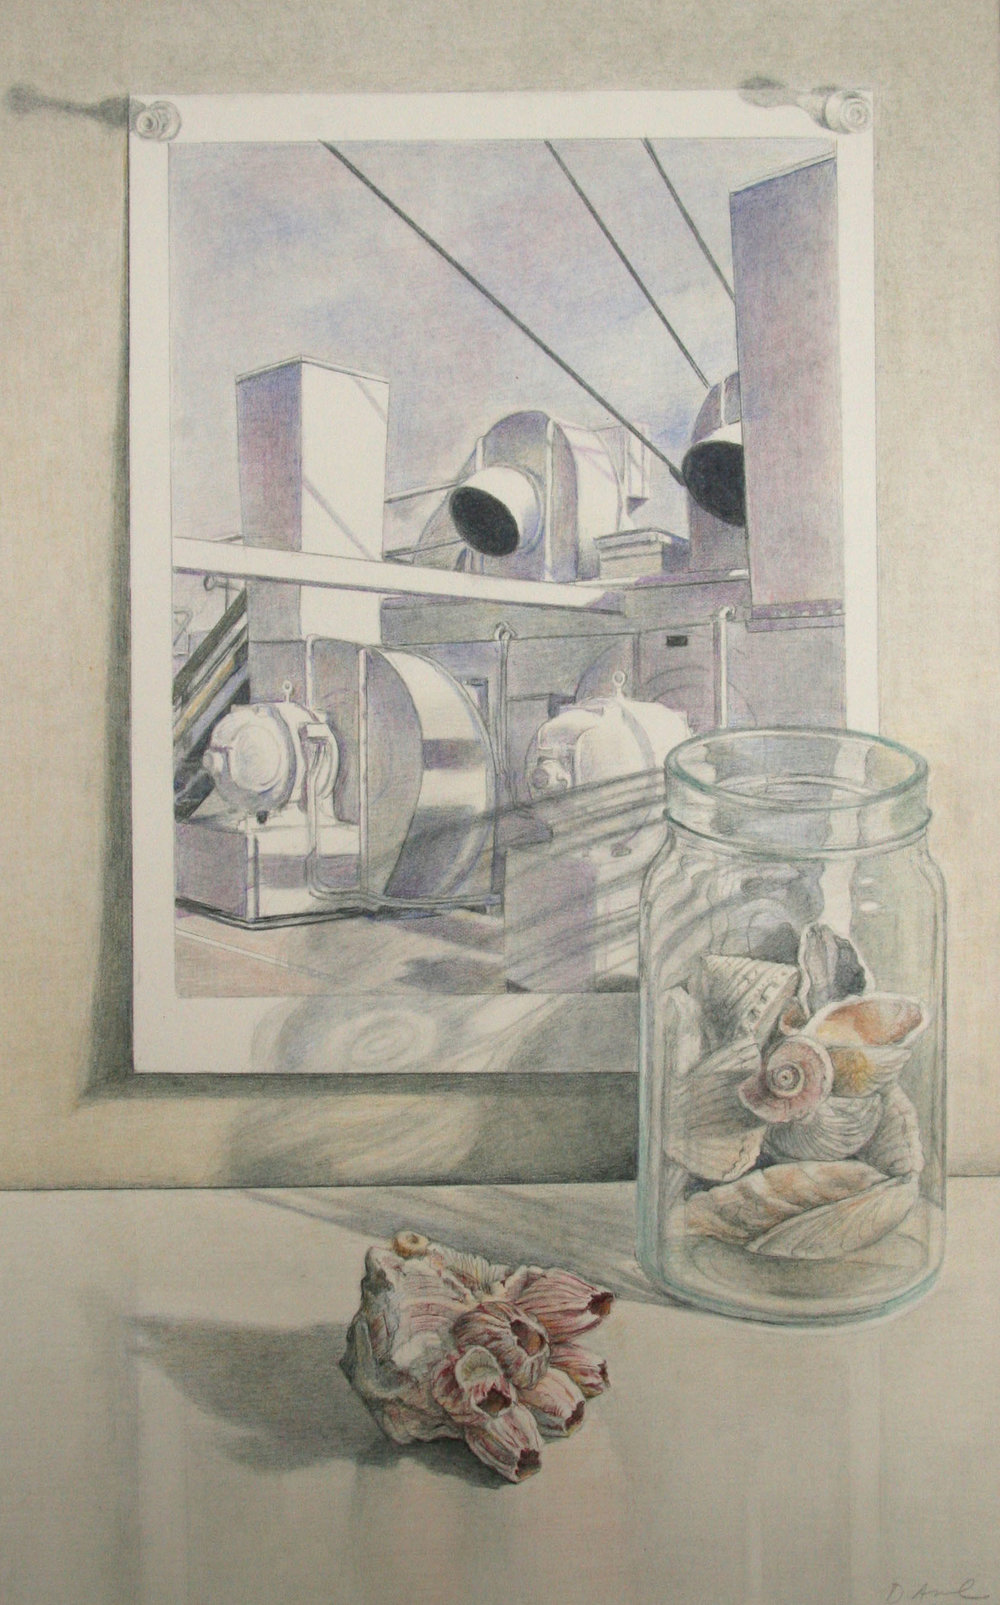 Sheeler with Shells